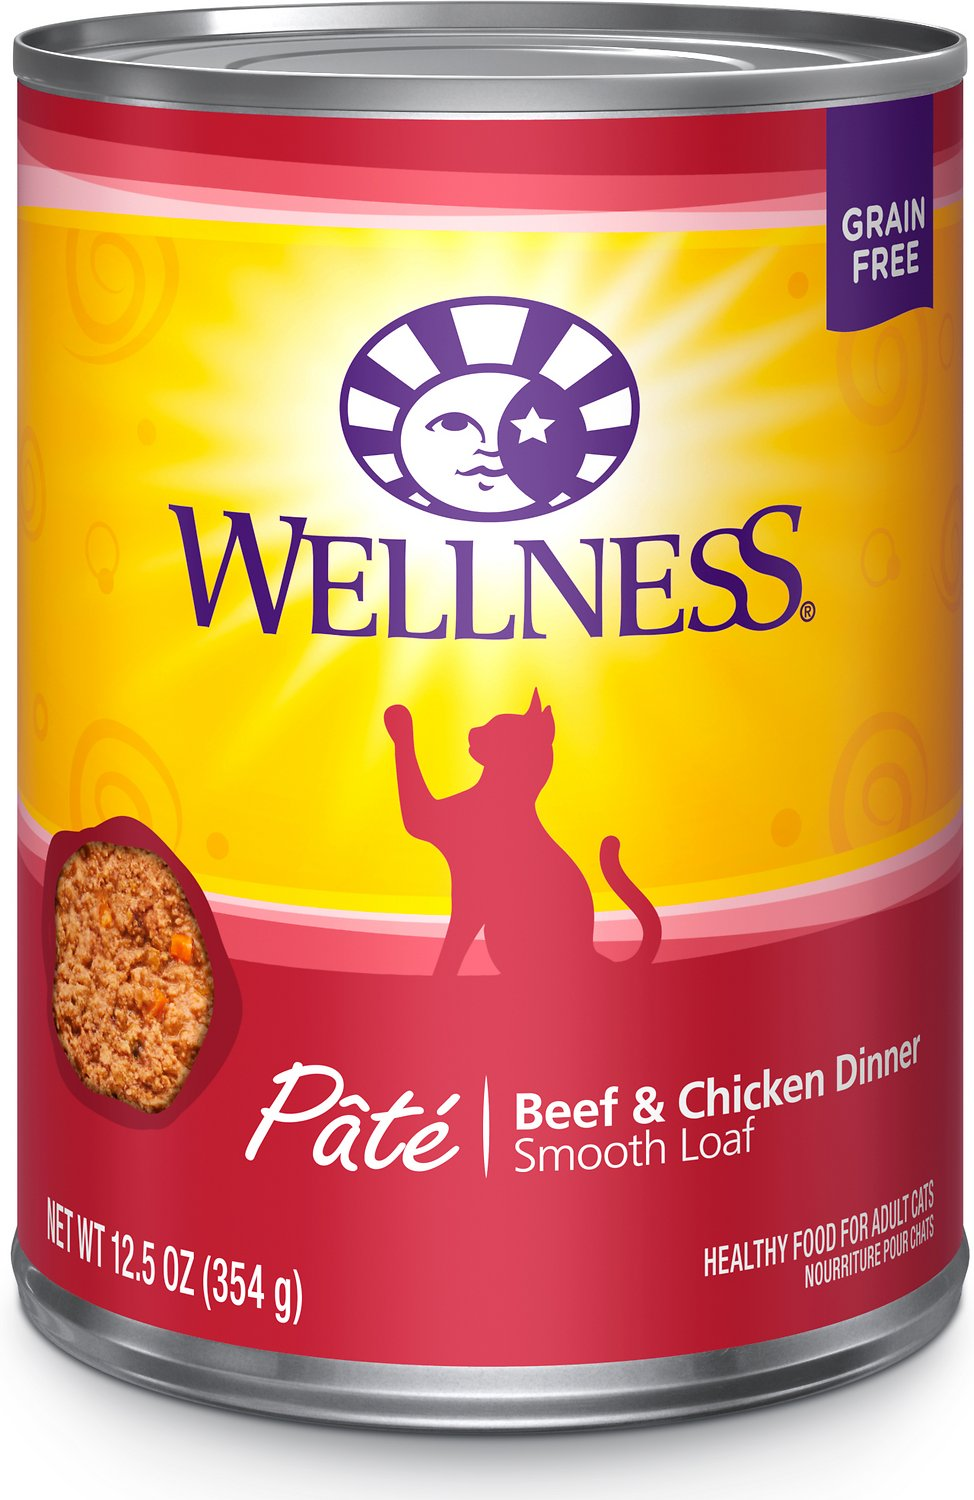 Wellness Complete Health Adult Beef & Chicken Formula Grain-Free Canned Cat Food, 12.5-oz